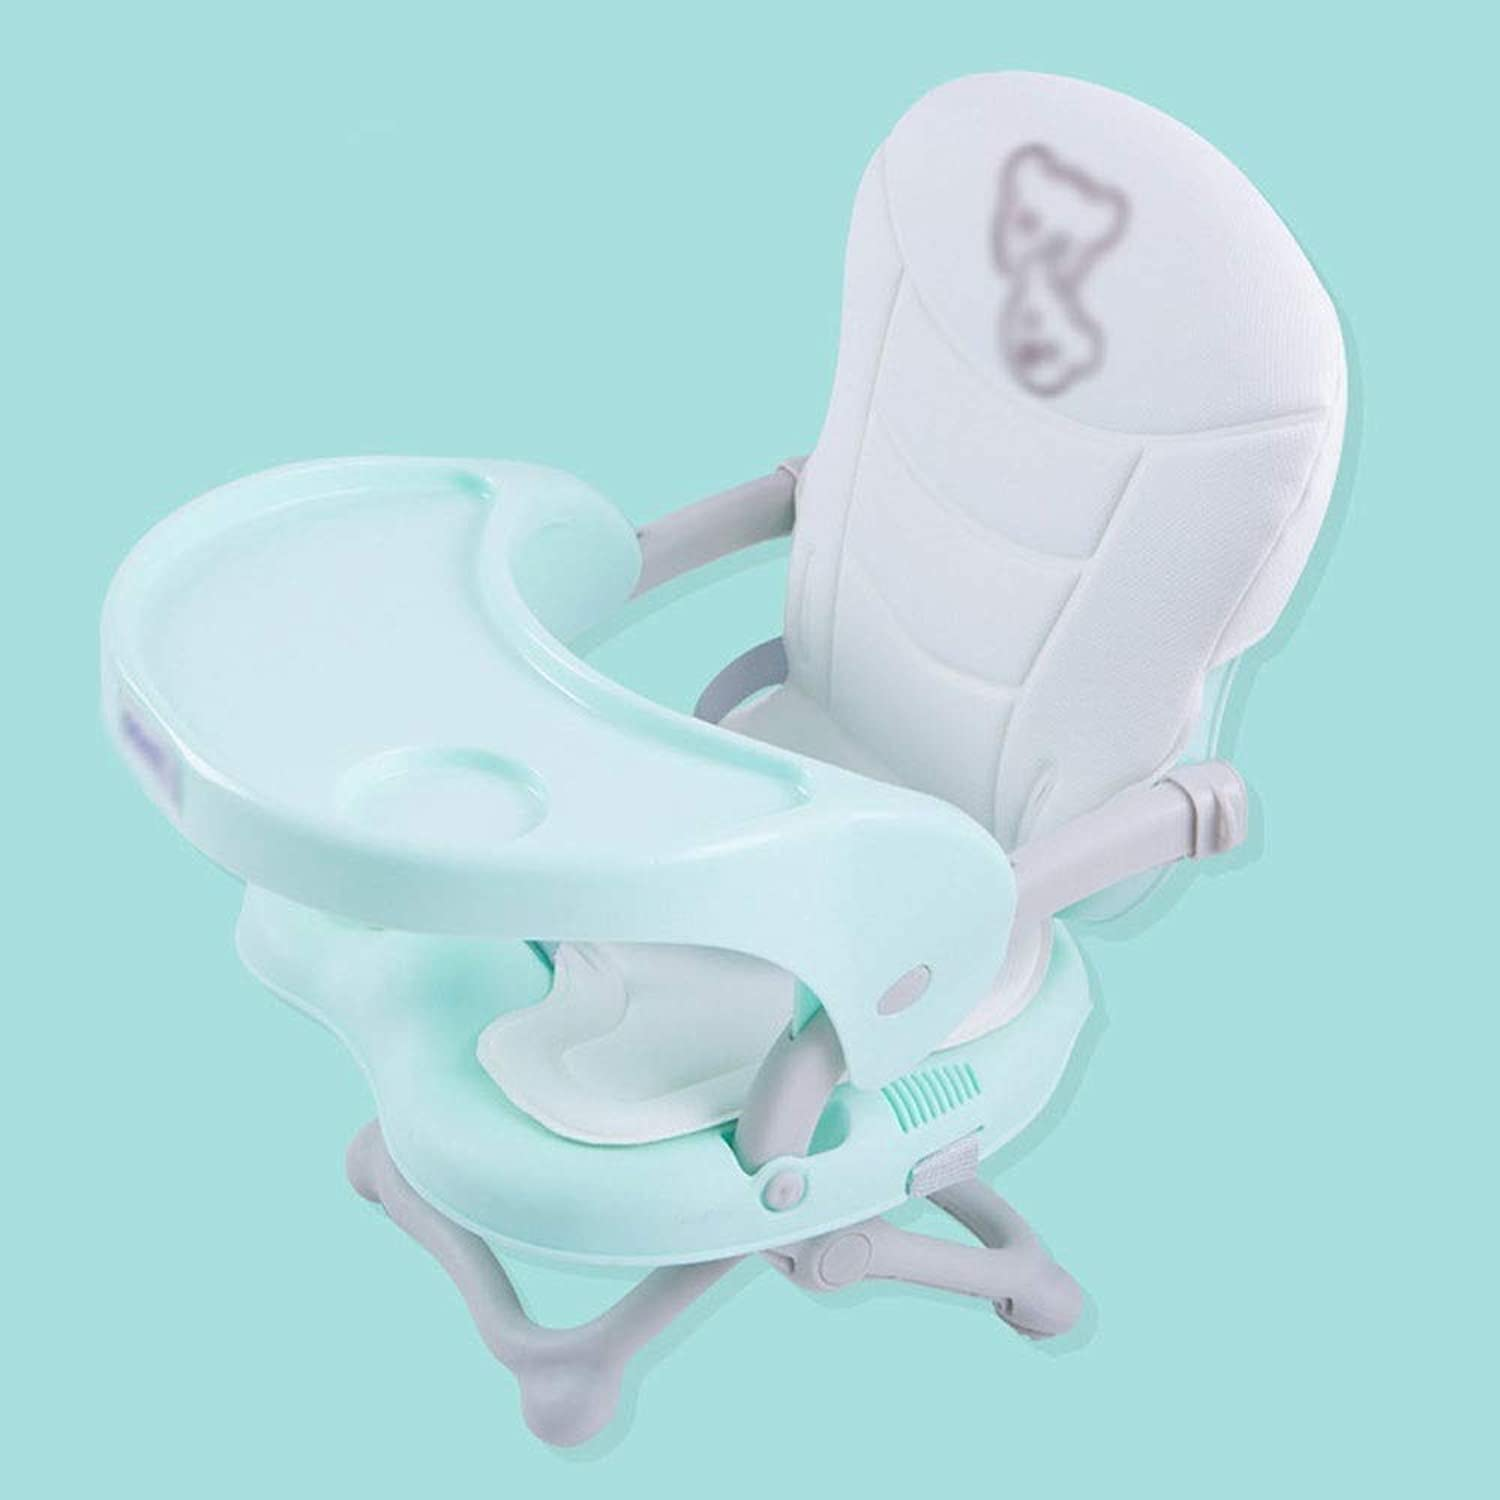 WYQBBY Baby high Chair - Aluminum Alloy, 6 Months - 36 Months Baby Multi-Function Luxury Foldable Portable Out-of-The-Box Baby Change Dining Stool - 3 colors Available (color   bluee)